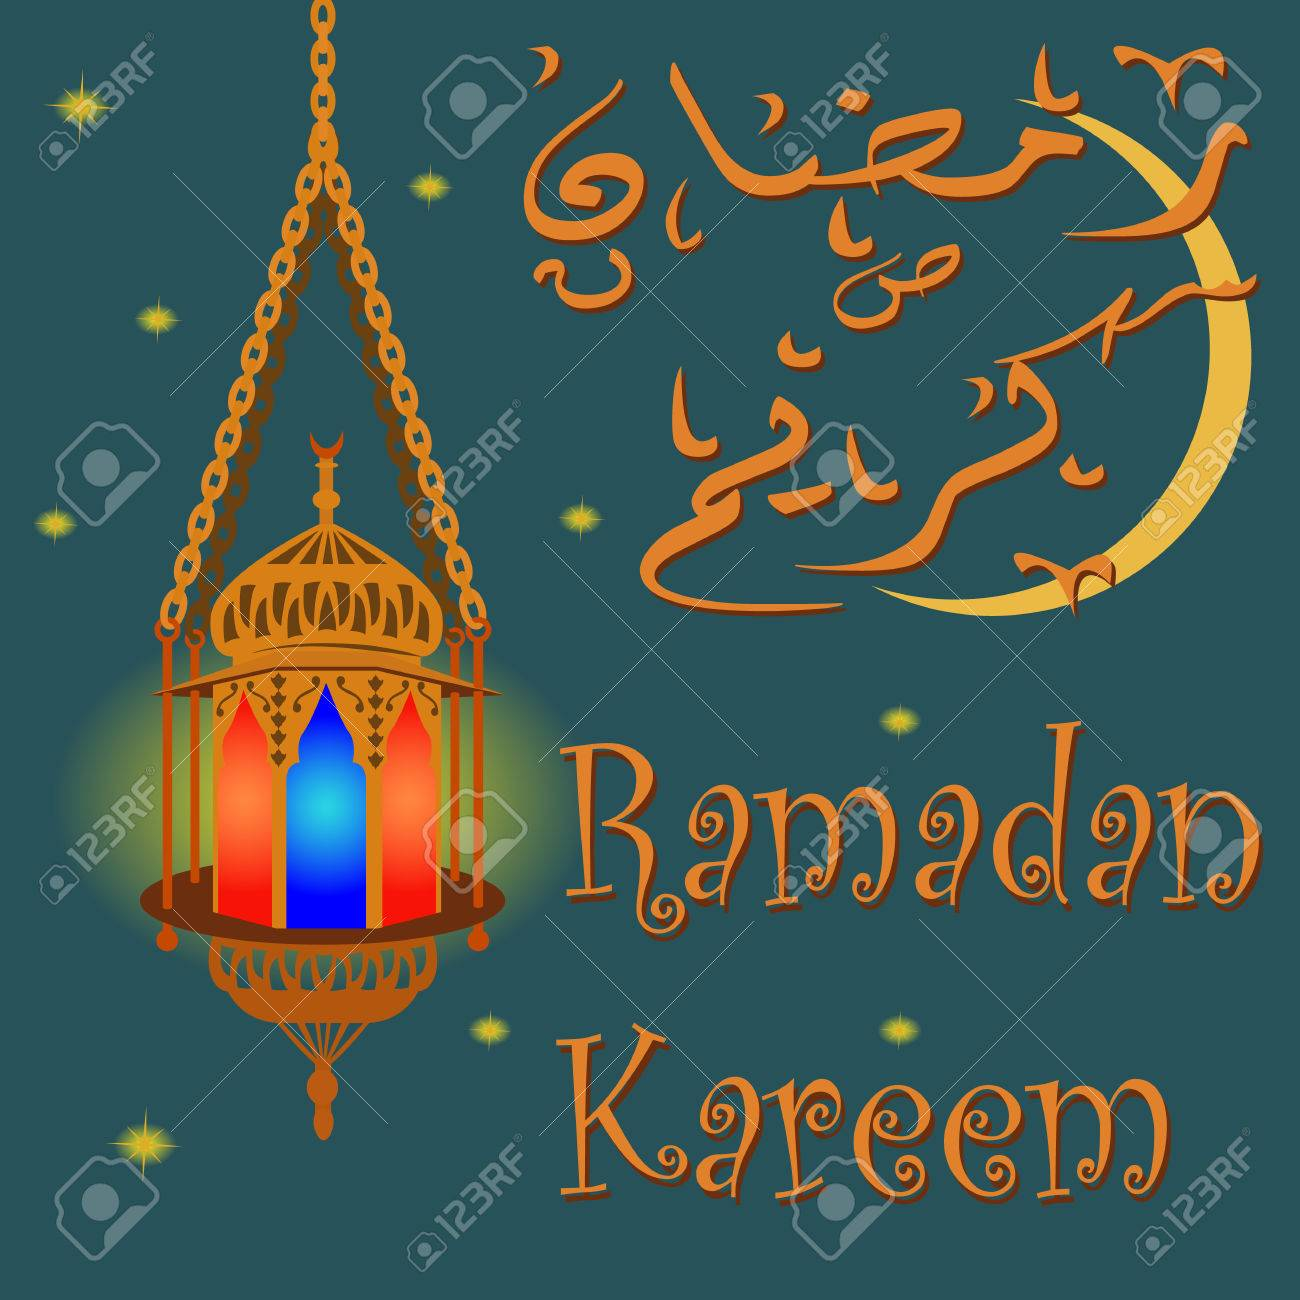 Ramadan Kareem Greeting In English And Arabic Calligraphy Lettering